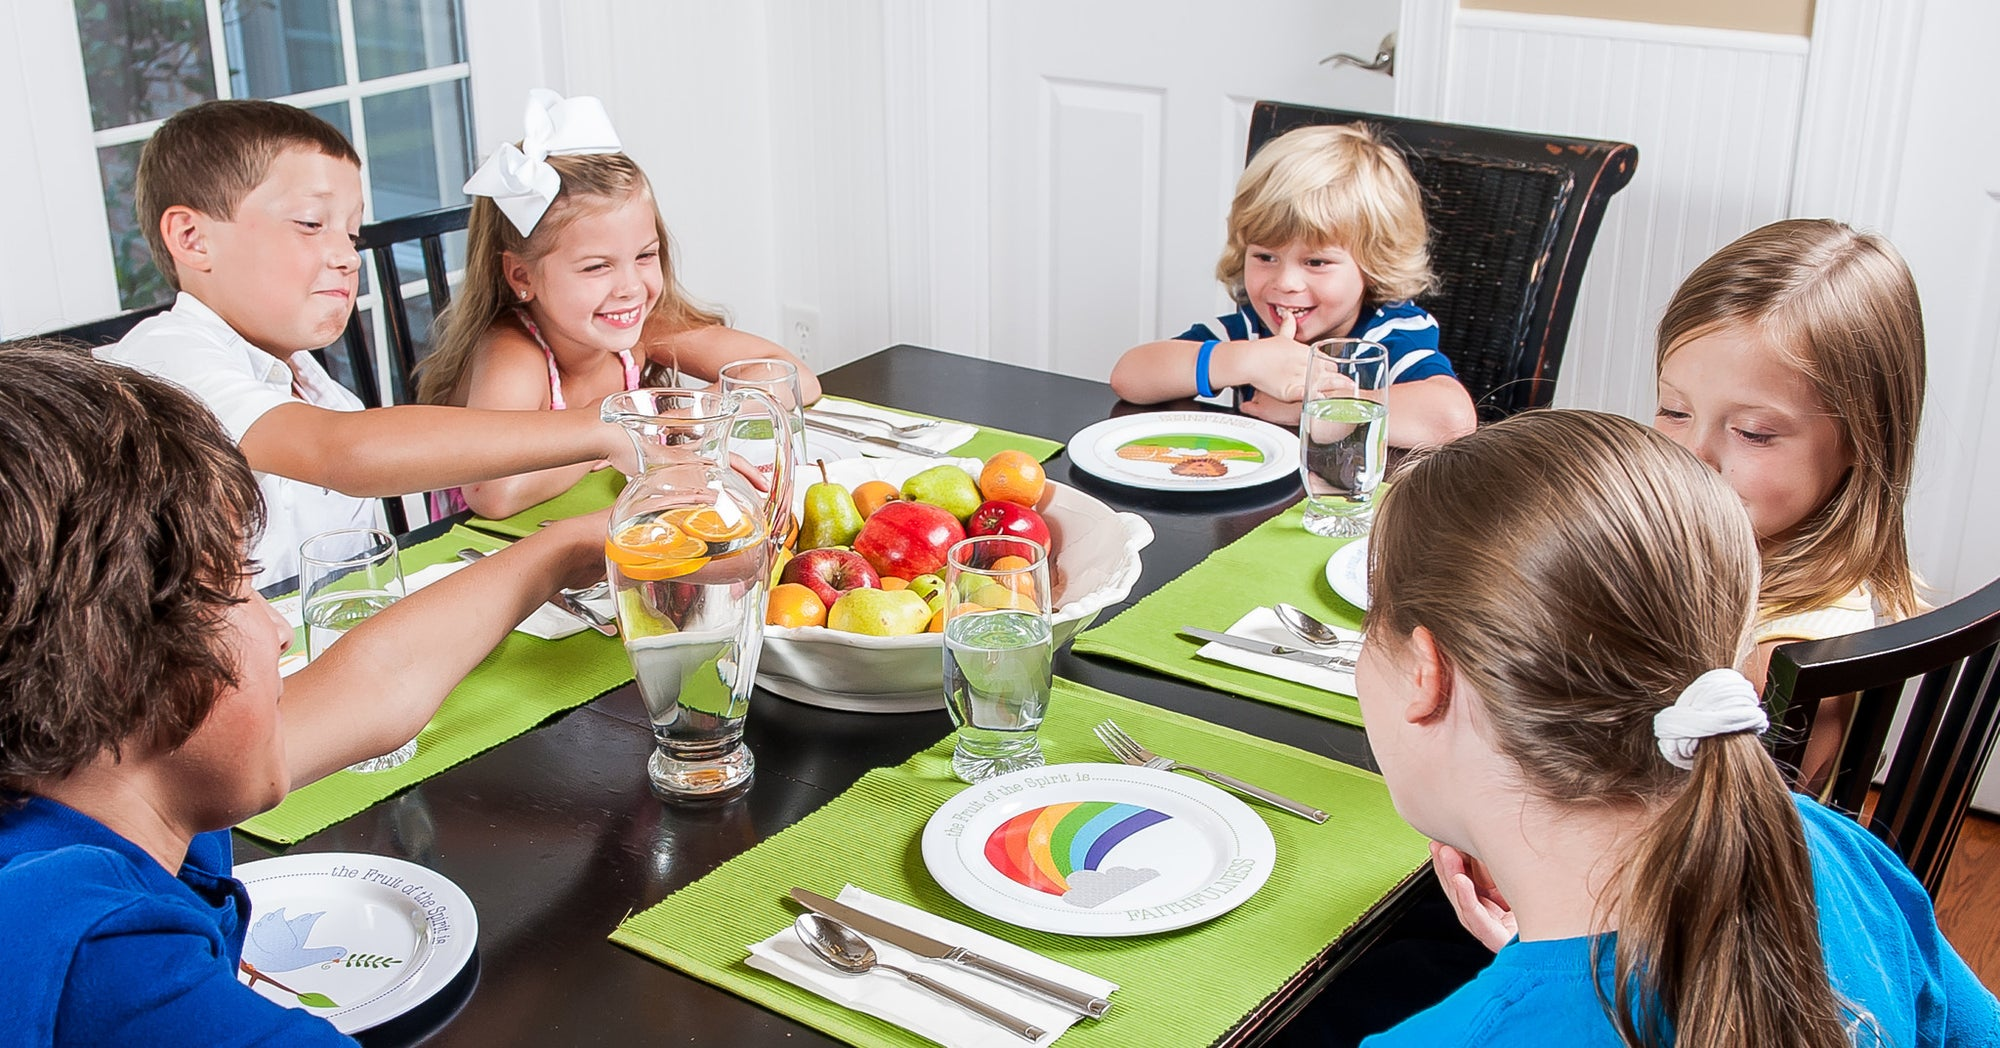 Make Mealtimes Fun and Meaningful!